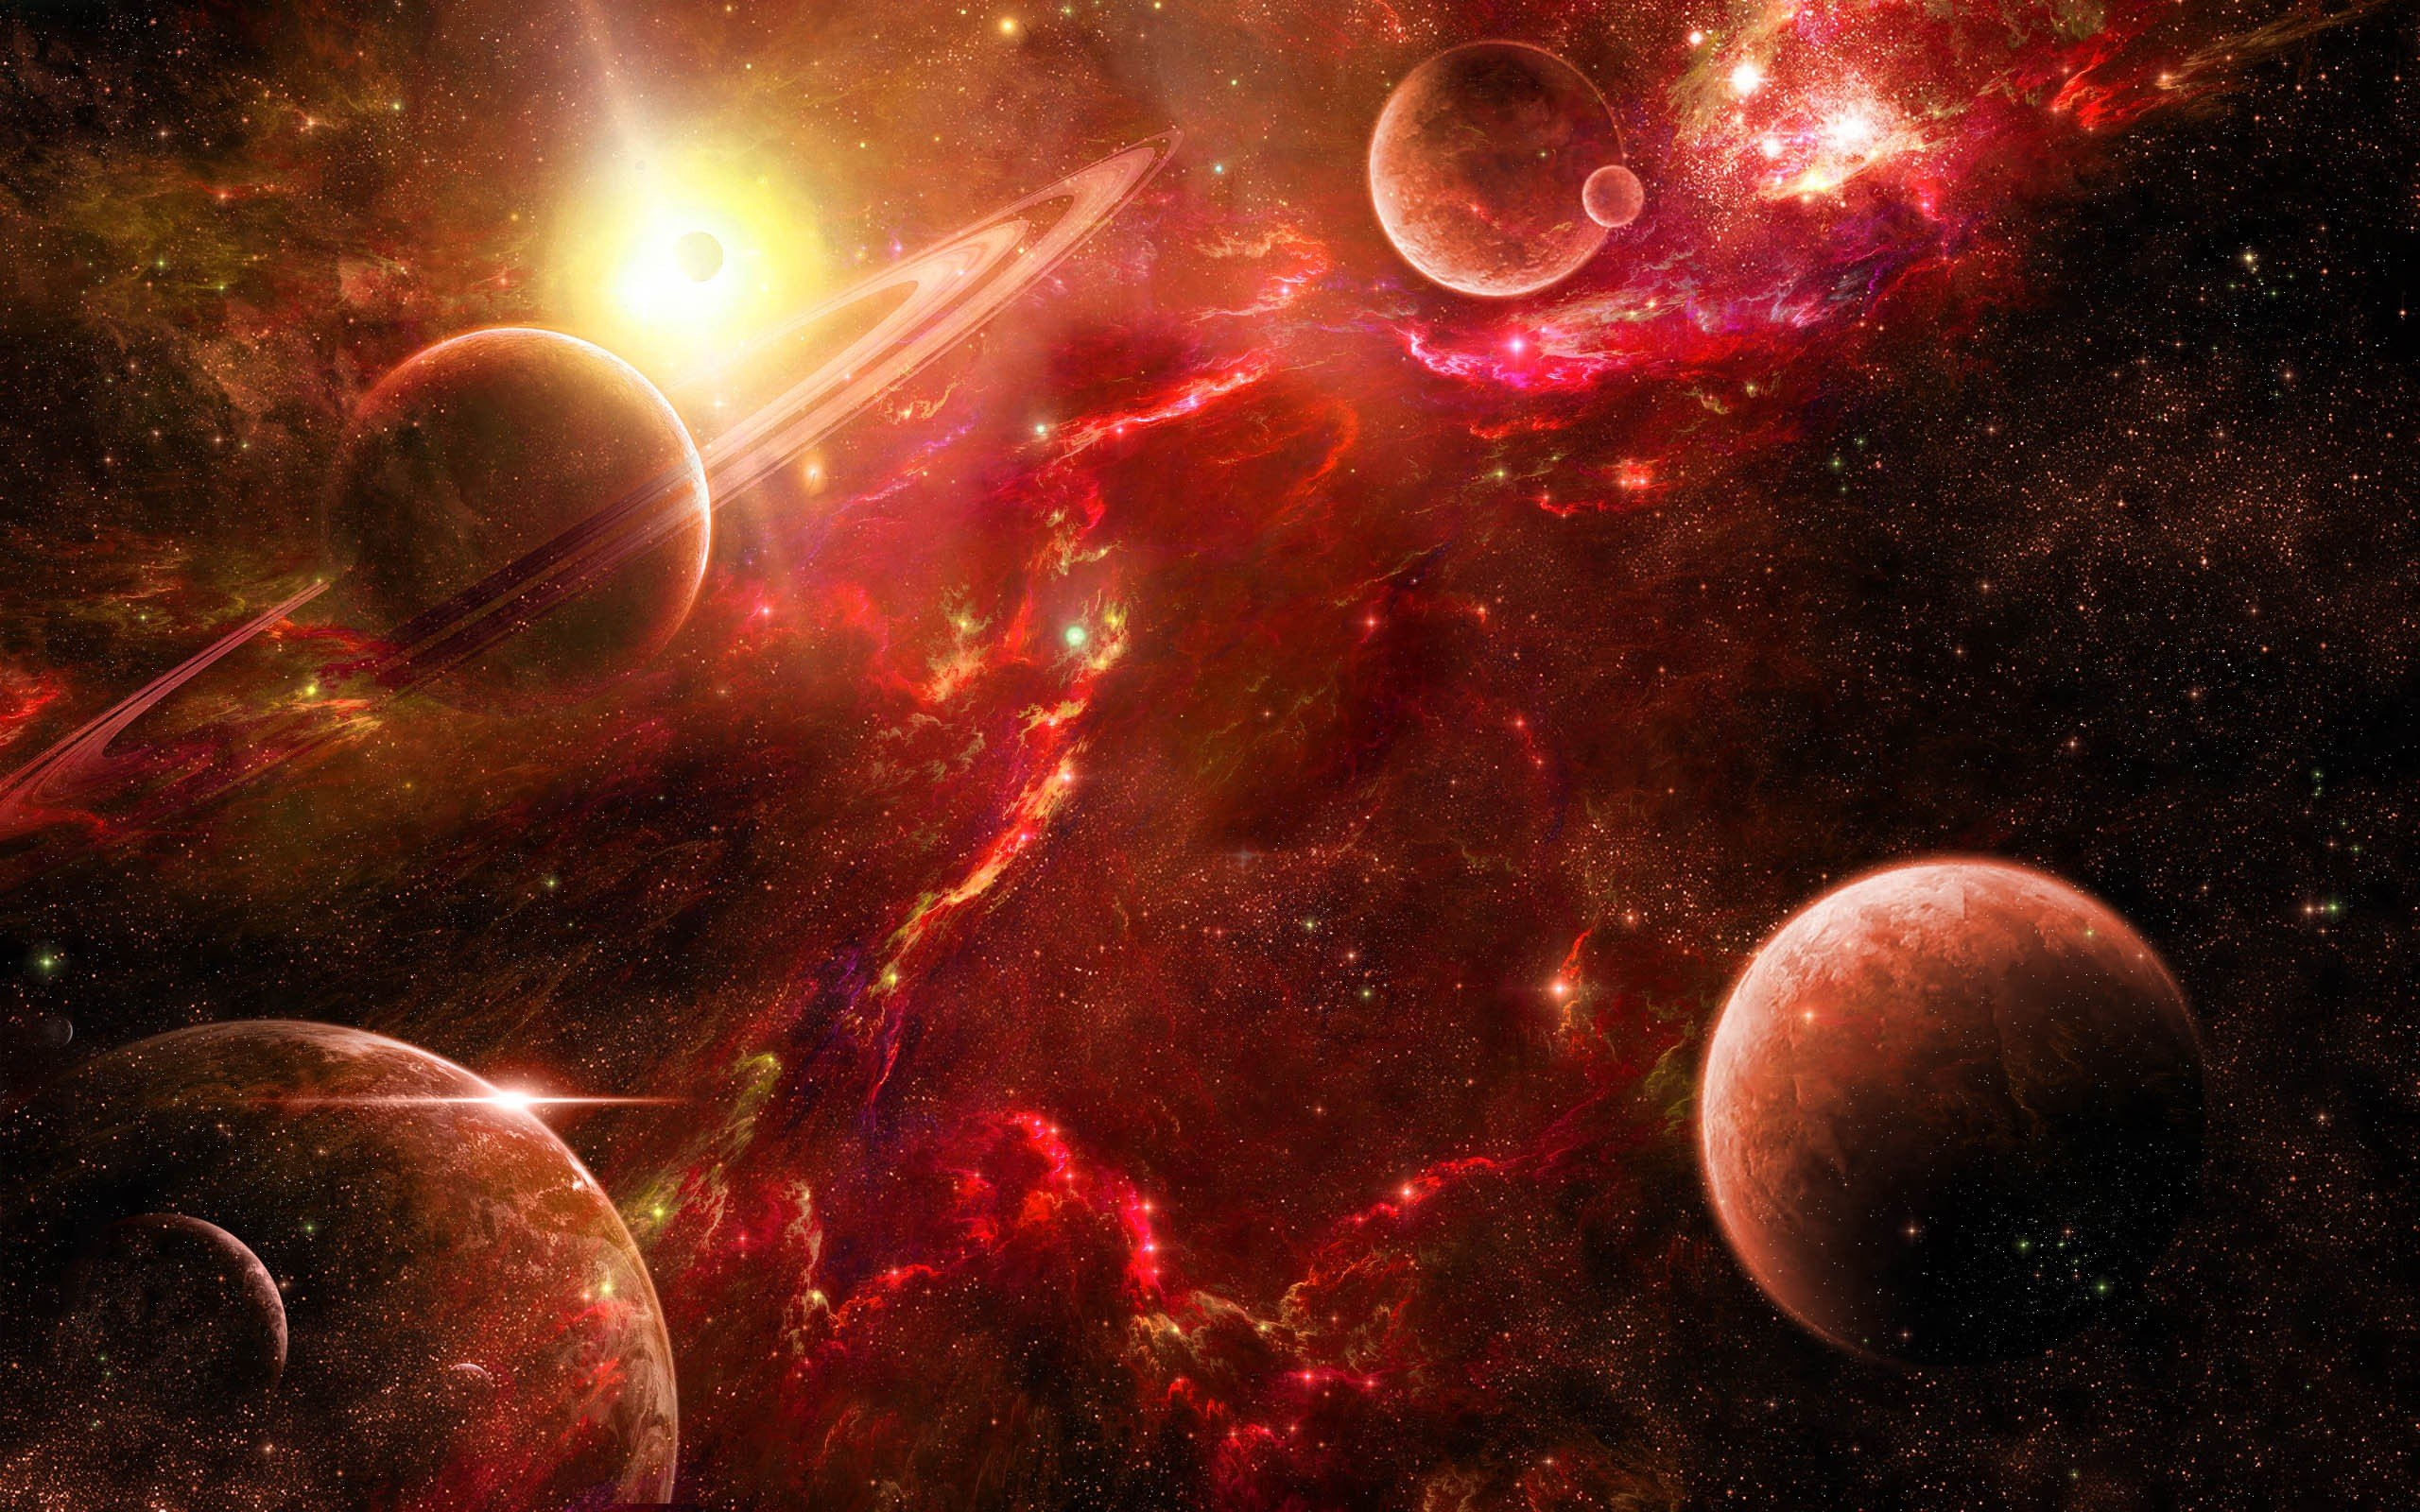 Outer space wallpaper planets wallpapersafari for Outer space planets